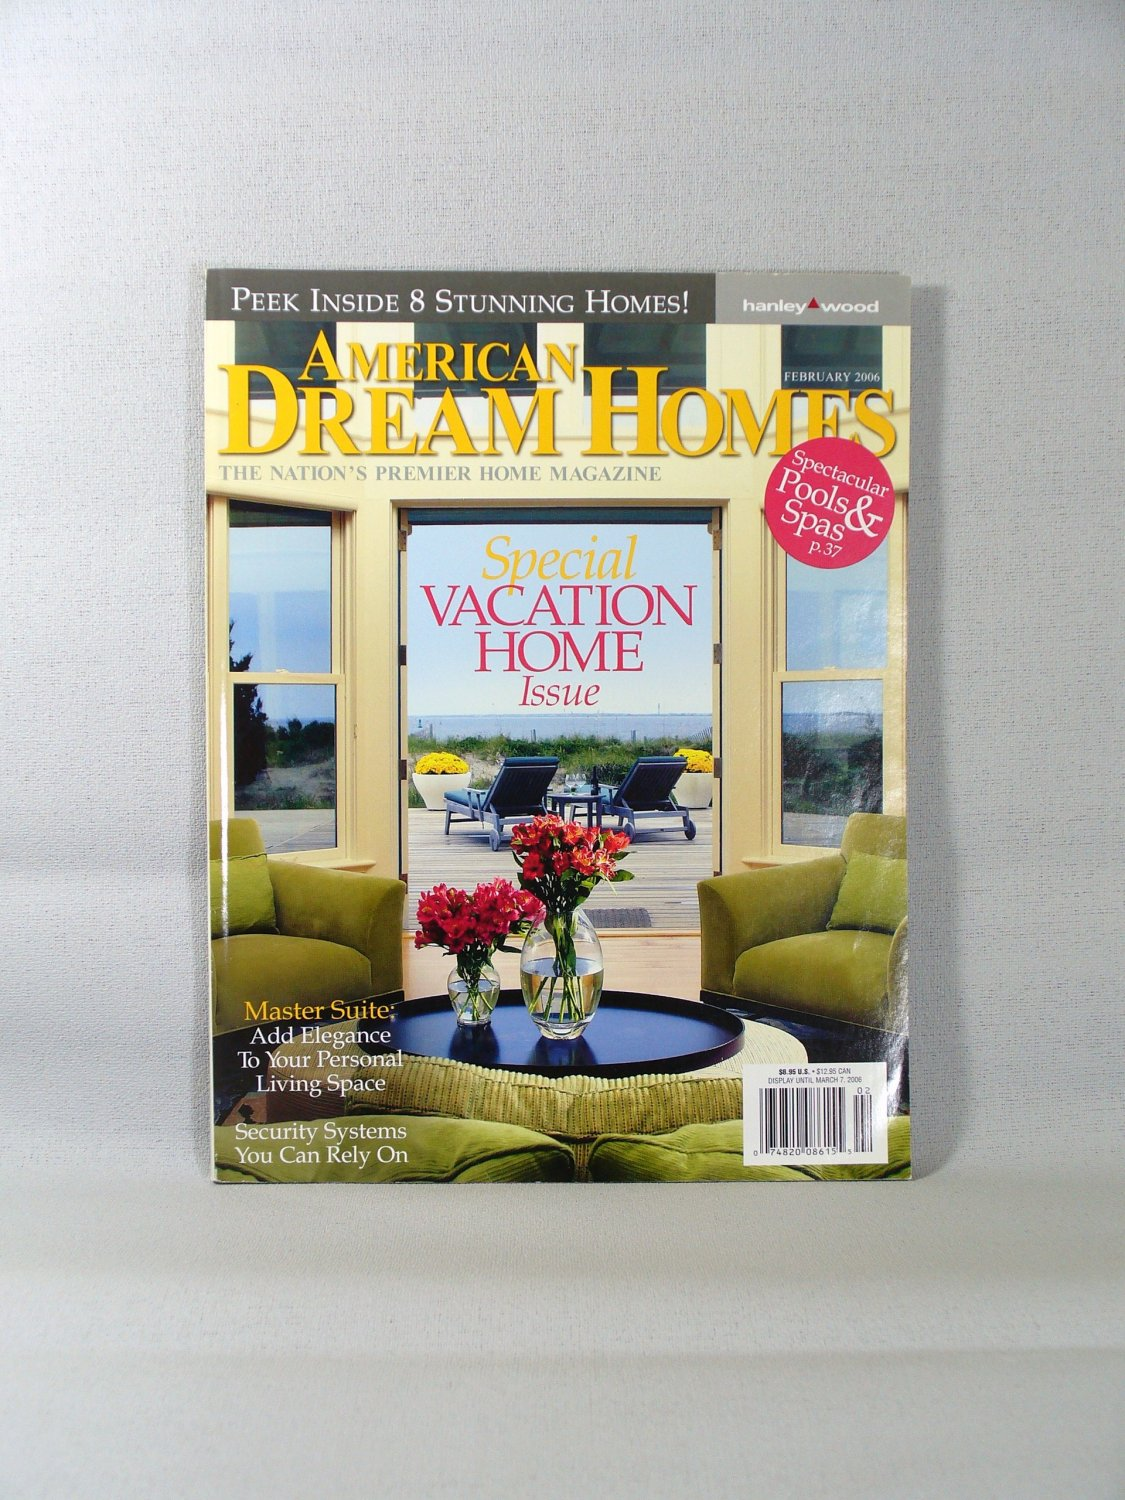 American dream homes magazine feb 2006 vacation home for Dream homes magazine